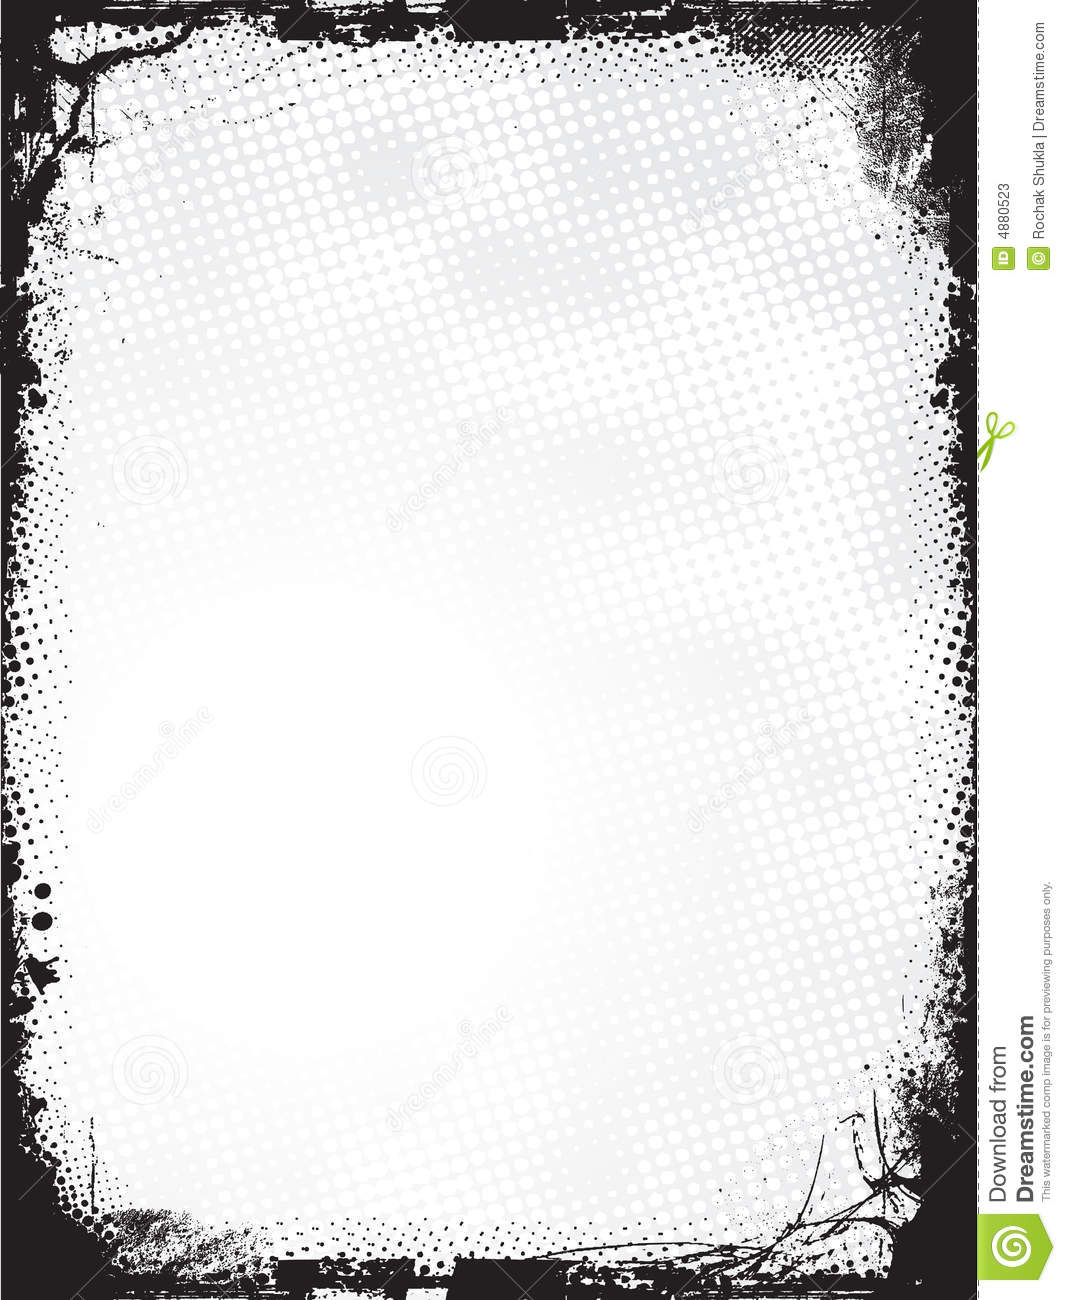 Country Border Cliparts Free Download Clip Art Free Clip Art additionally  furthermore  moreover Vgosn Vintage Poppy Clipart Bookplate Bw in addition Template Microsoft Word Page Borders Template Frames Border In With Regard To Border Template Microsoft Word. on free rustic border clip art